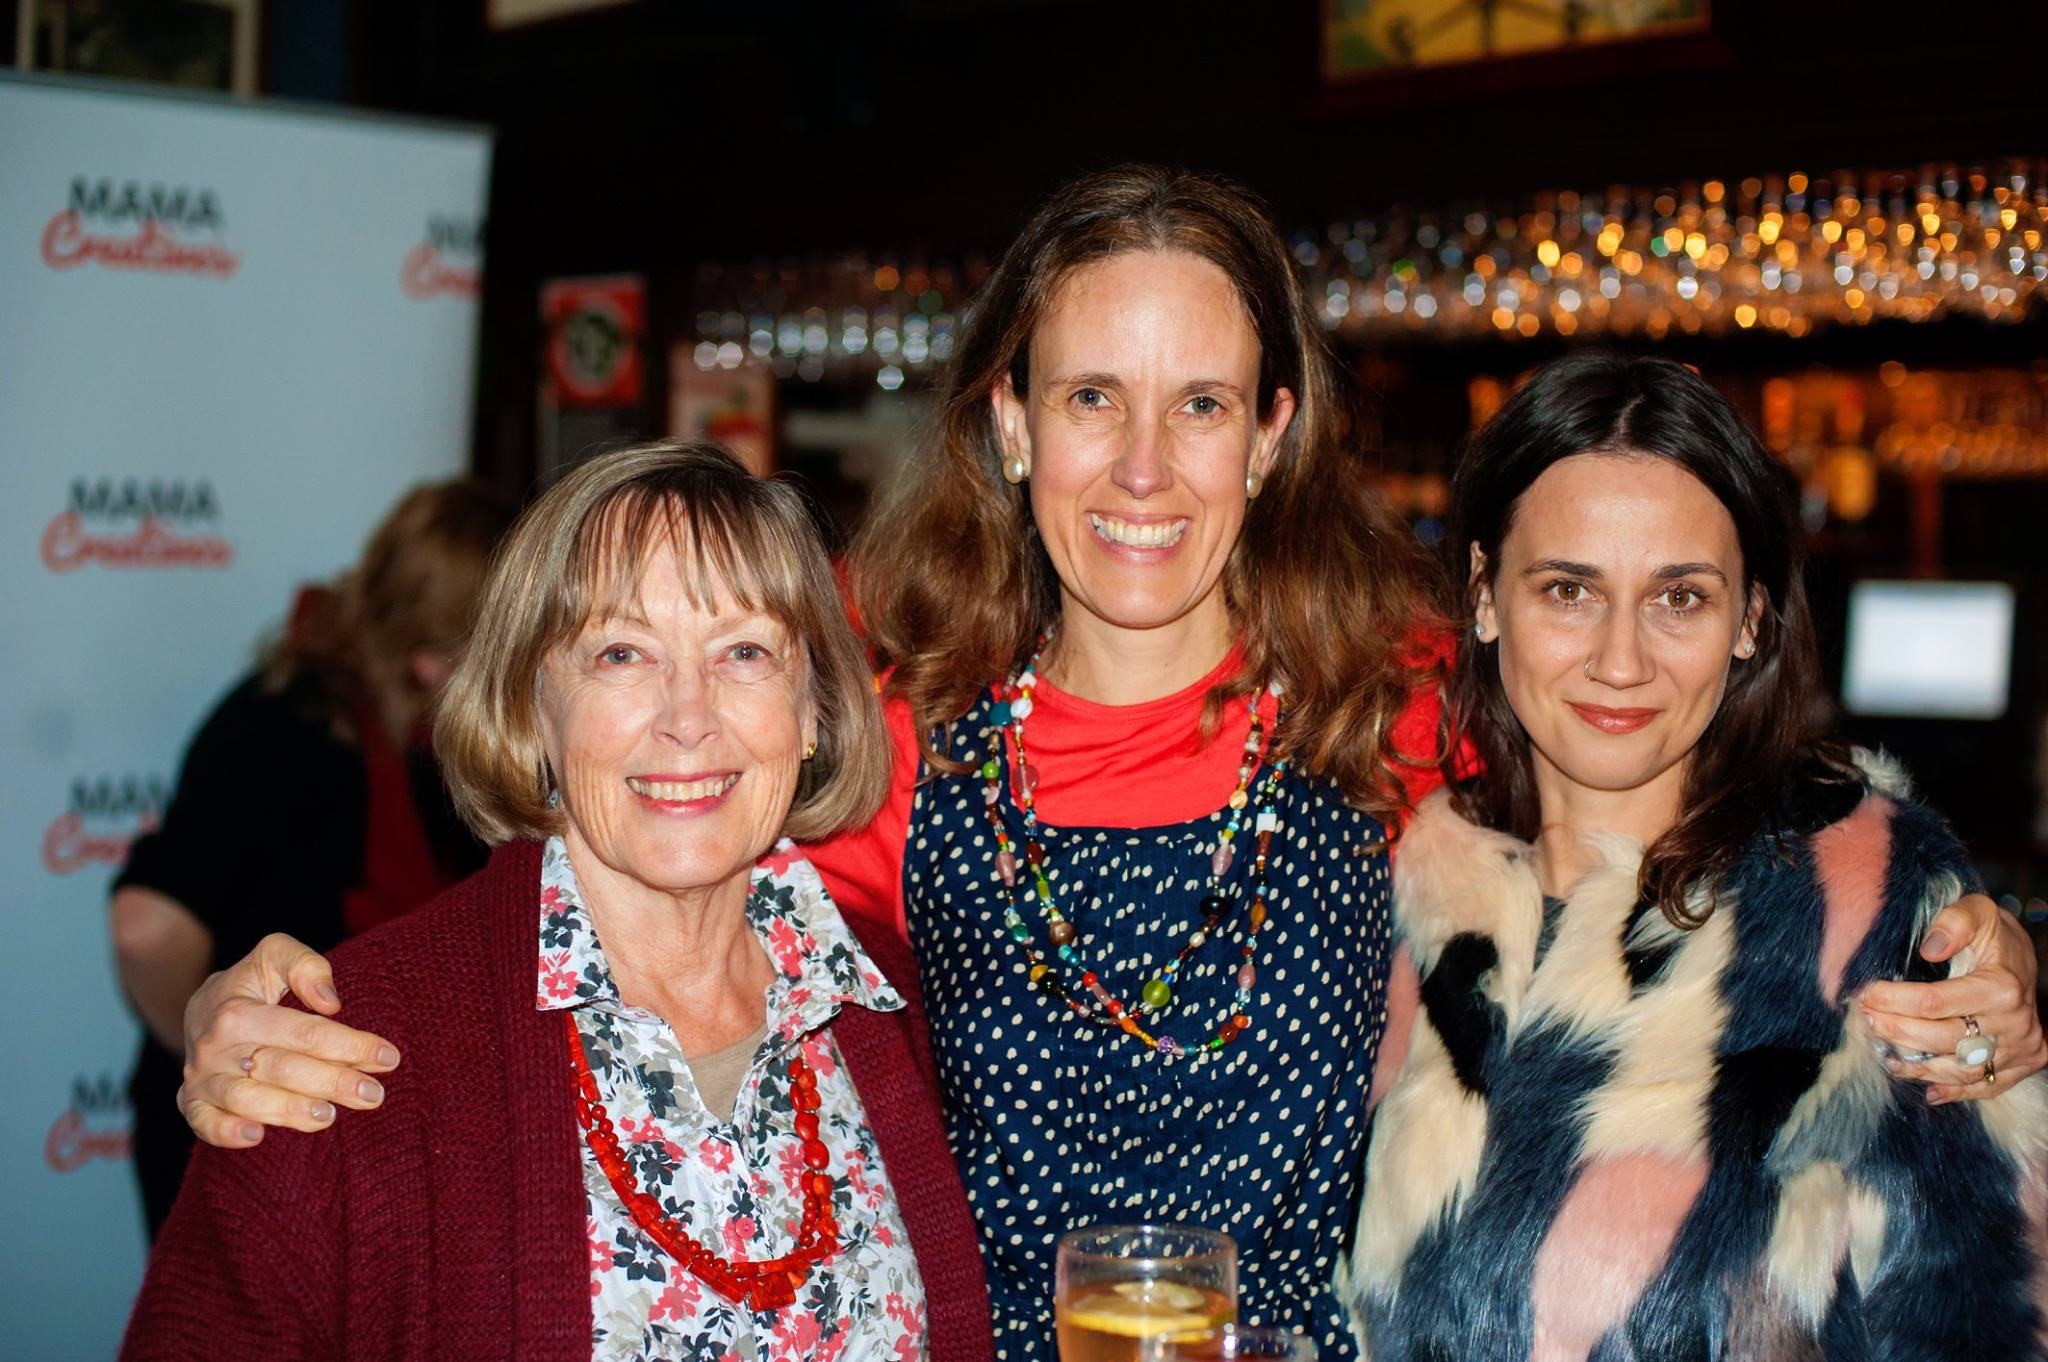 A trio of creative mamas, artist Yaeli Ohana with her mother Judith (left), and filmmaker Dominika Ferenz (right), at our Mama Creatives evening talk .